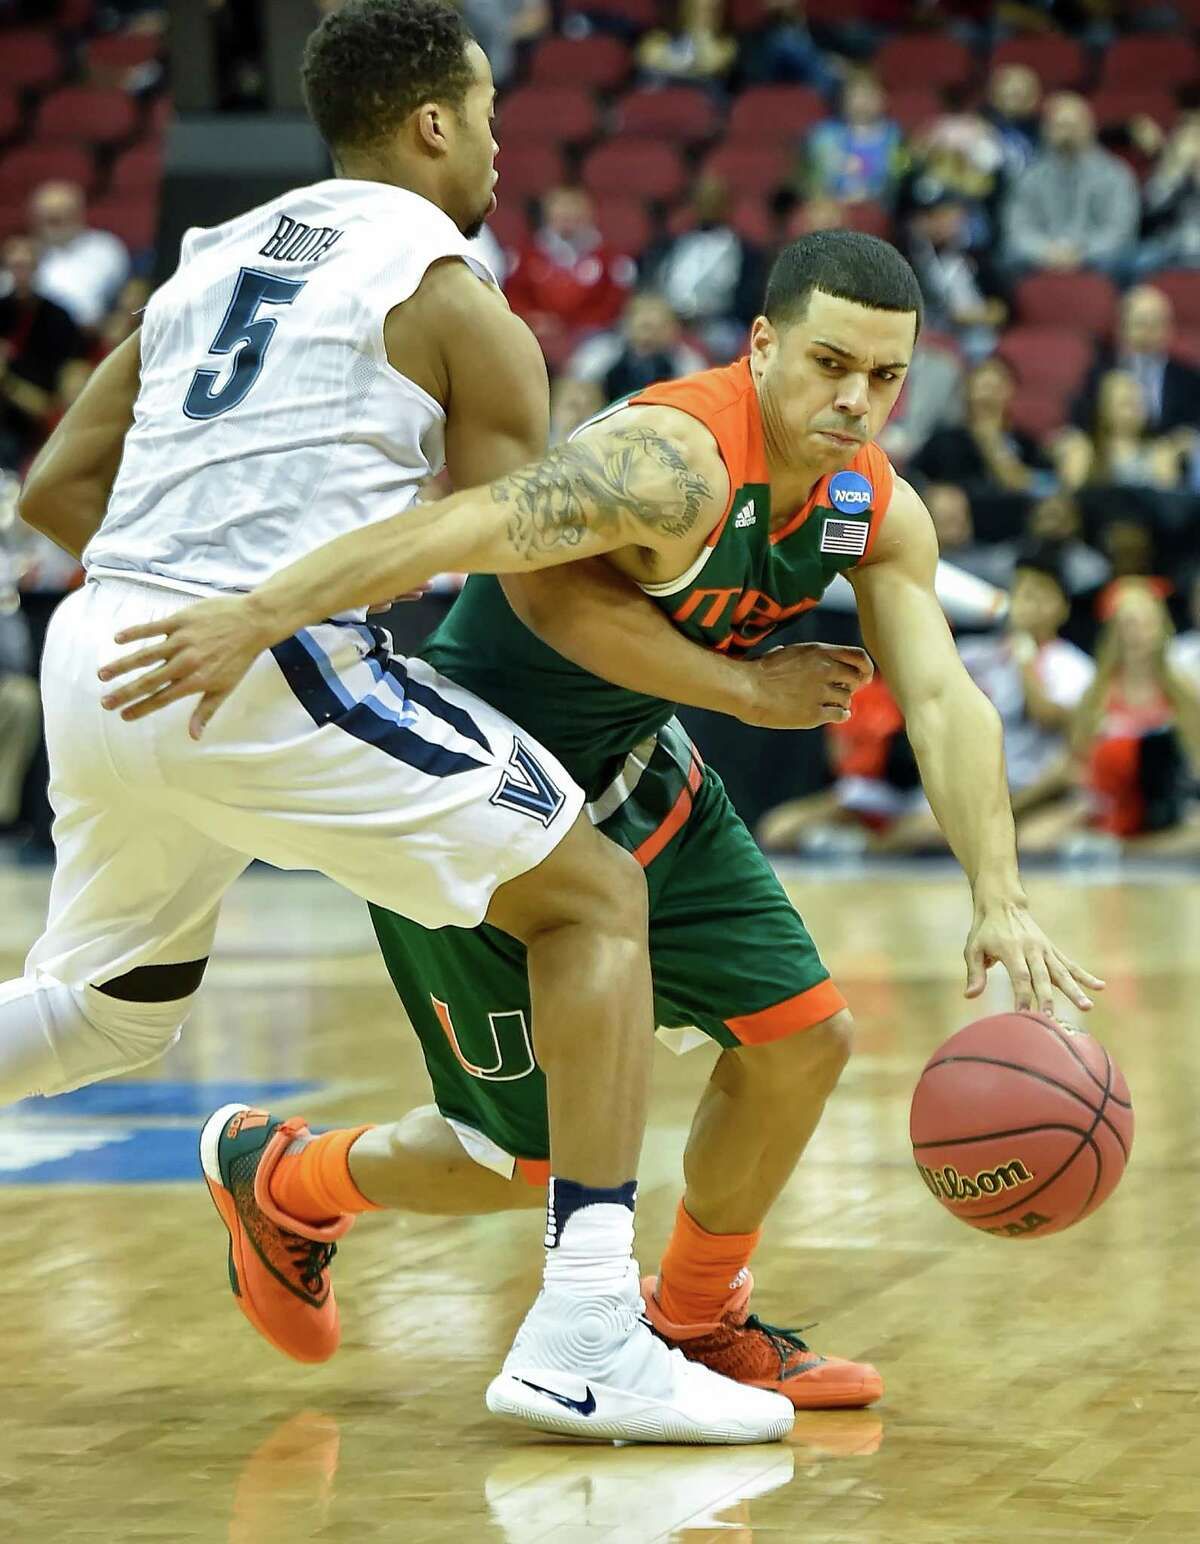 Miami's Angel Rodriguez (13) drives against Villanova's Phil Booth (5) in the first half during a Sweet 16 matchup in the NCAA Tournament's South region at the KFC Yum! Center in Louisville, Ky., on Thursday, March 24, 2016.